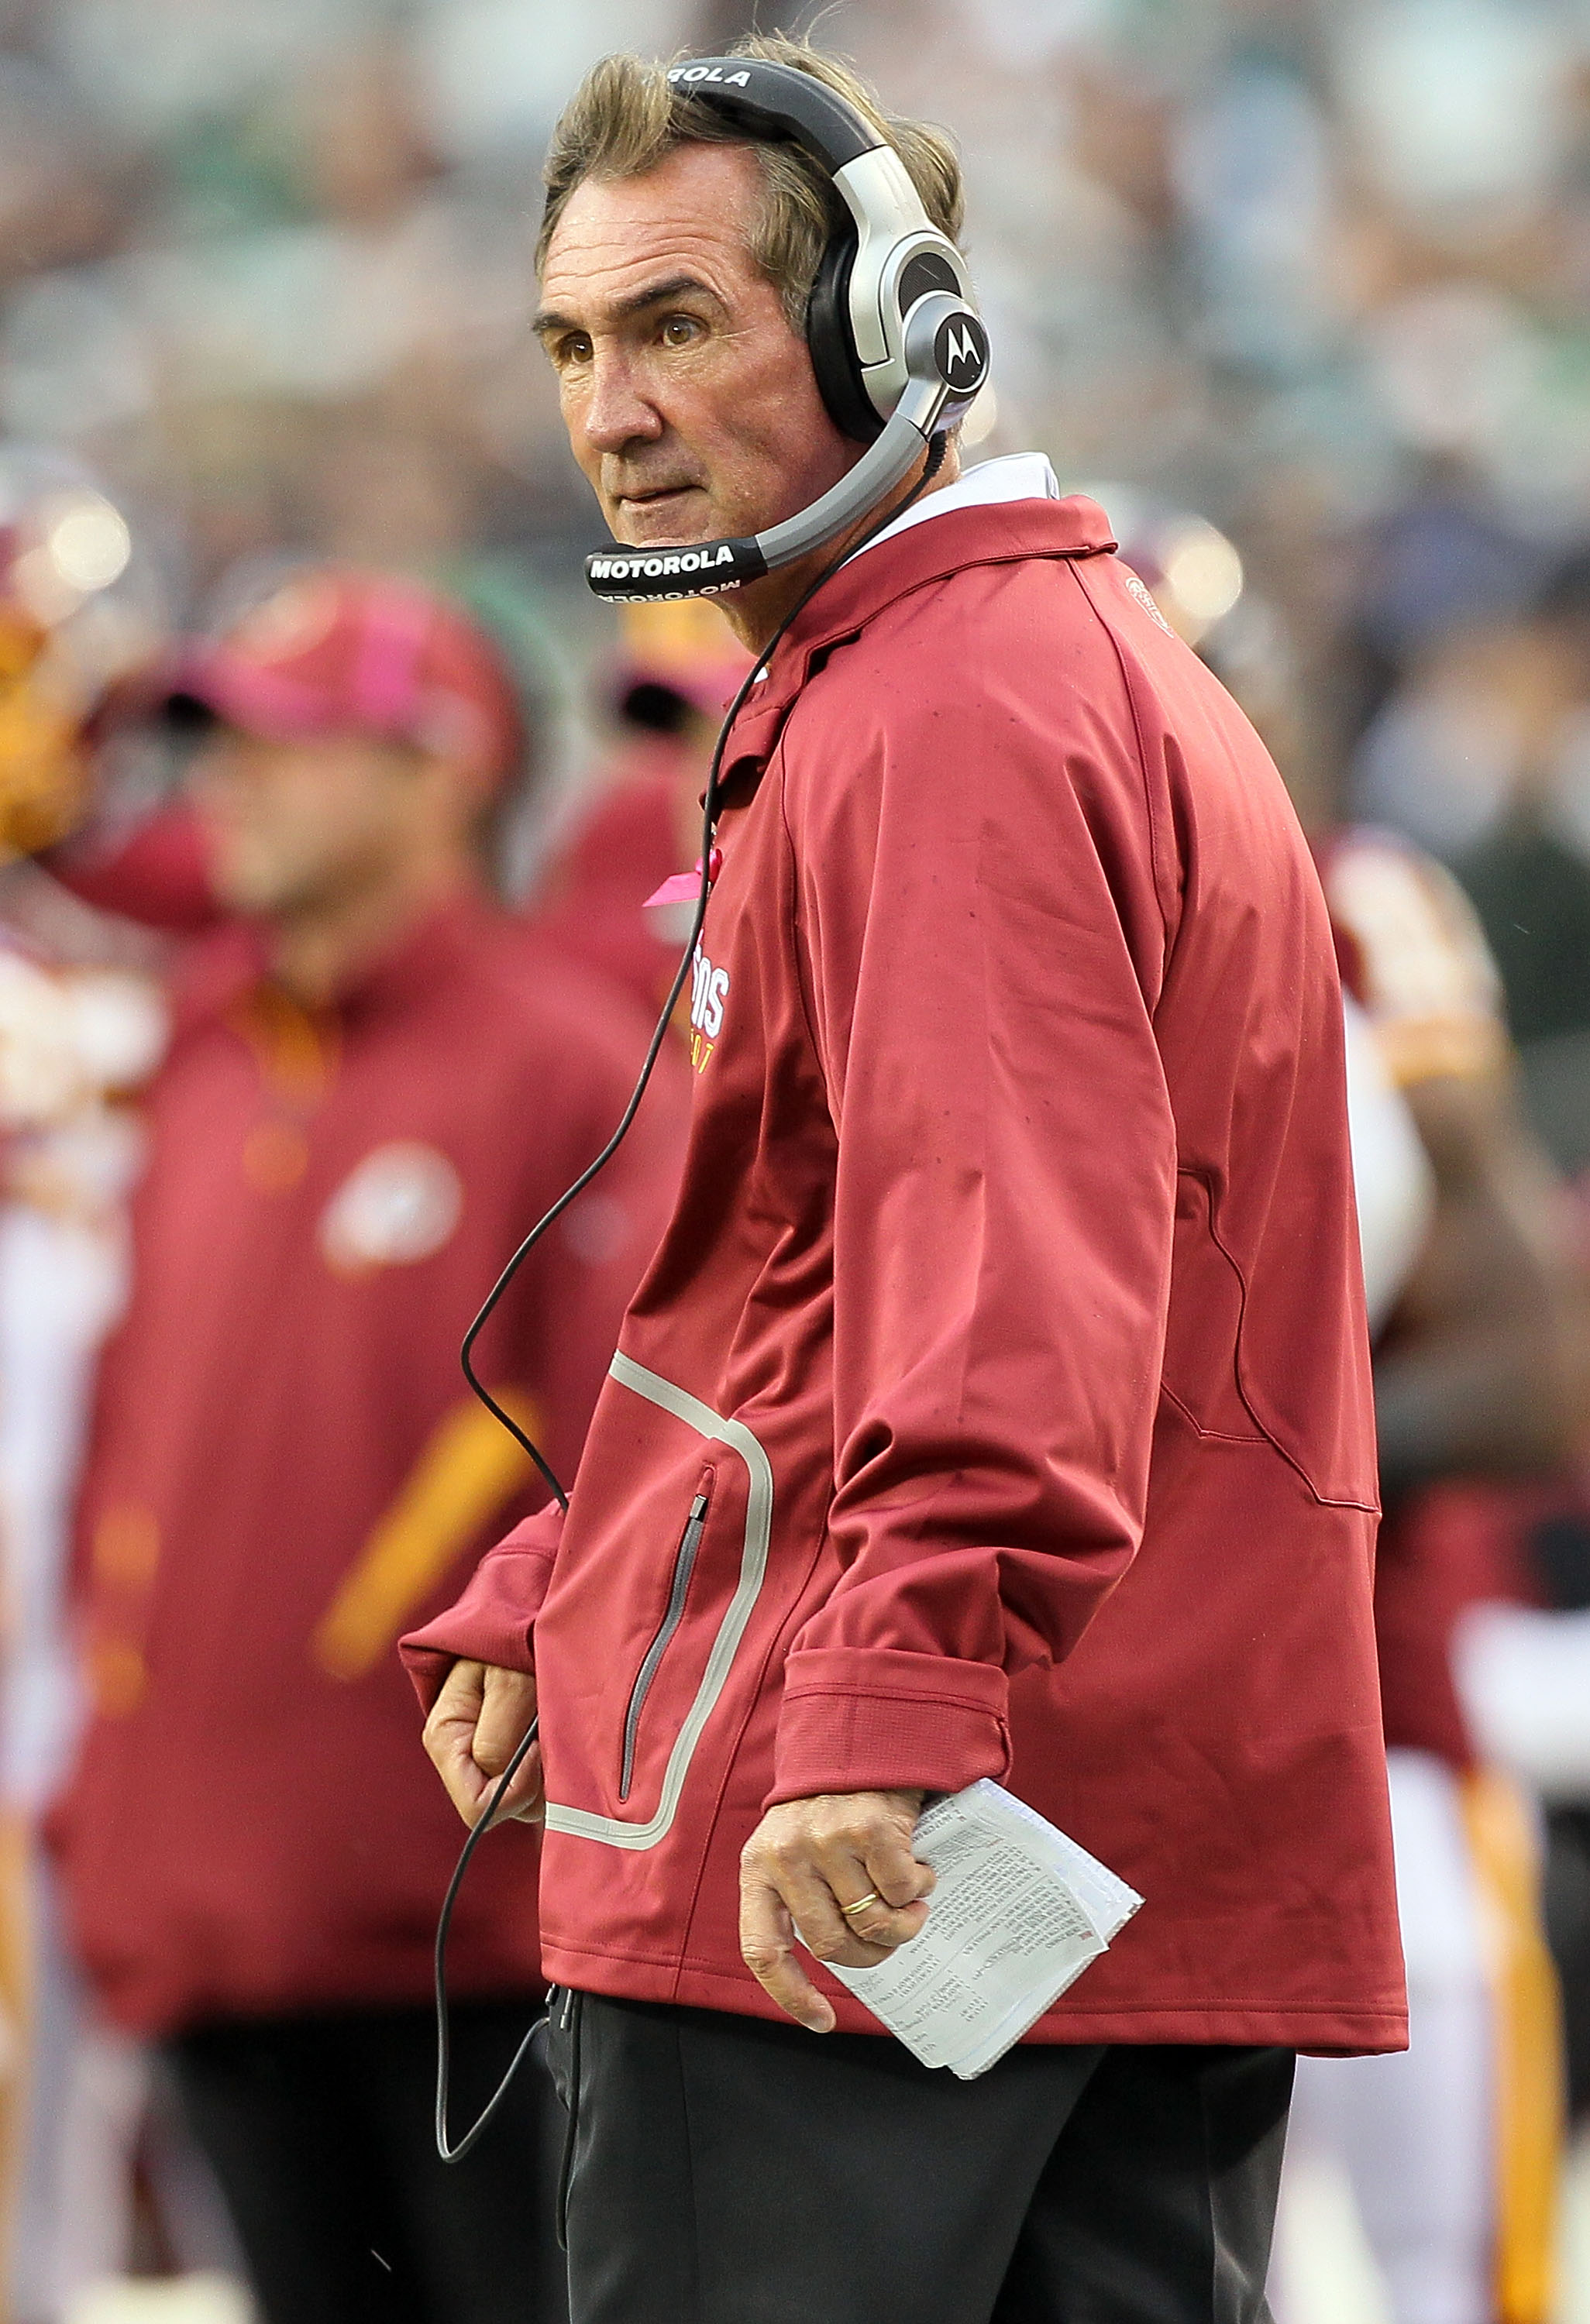 PHILADELPHIA - OCTOBER 03:  Head coach Mike Shanahan of the Washington Redskins looks on against the Philadelphia Eagles on October 3, 2010 at Lincoln Financial Field in Philadelphia, Pennsylvania.  (Photo by Jim McIsaac/Getty Images)